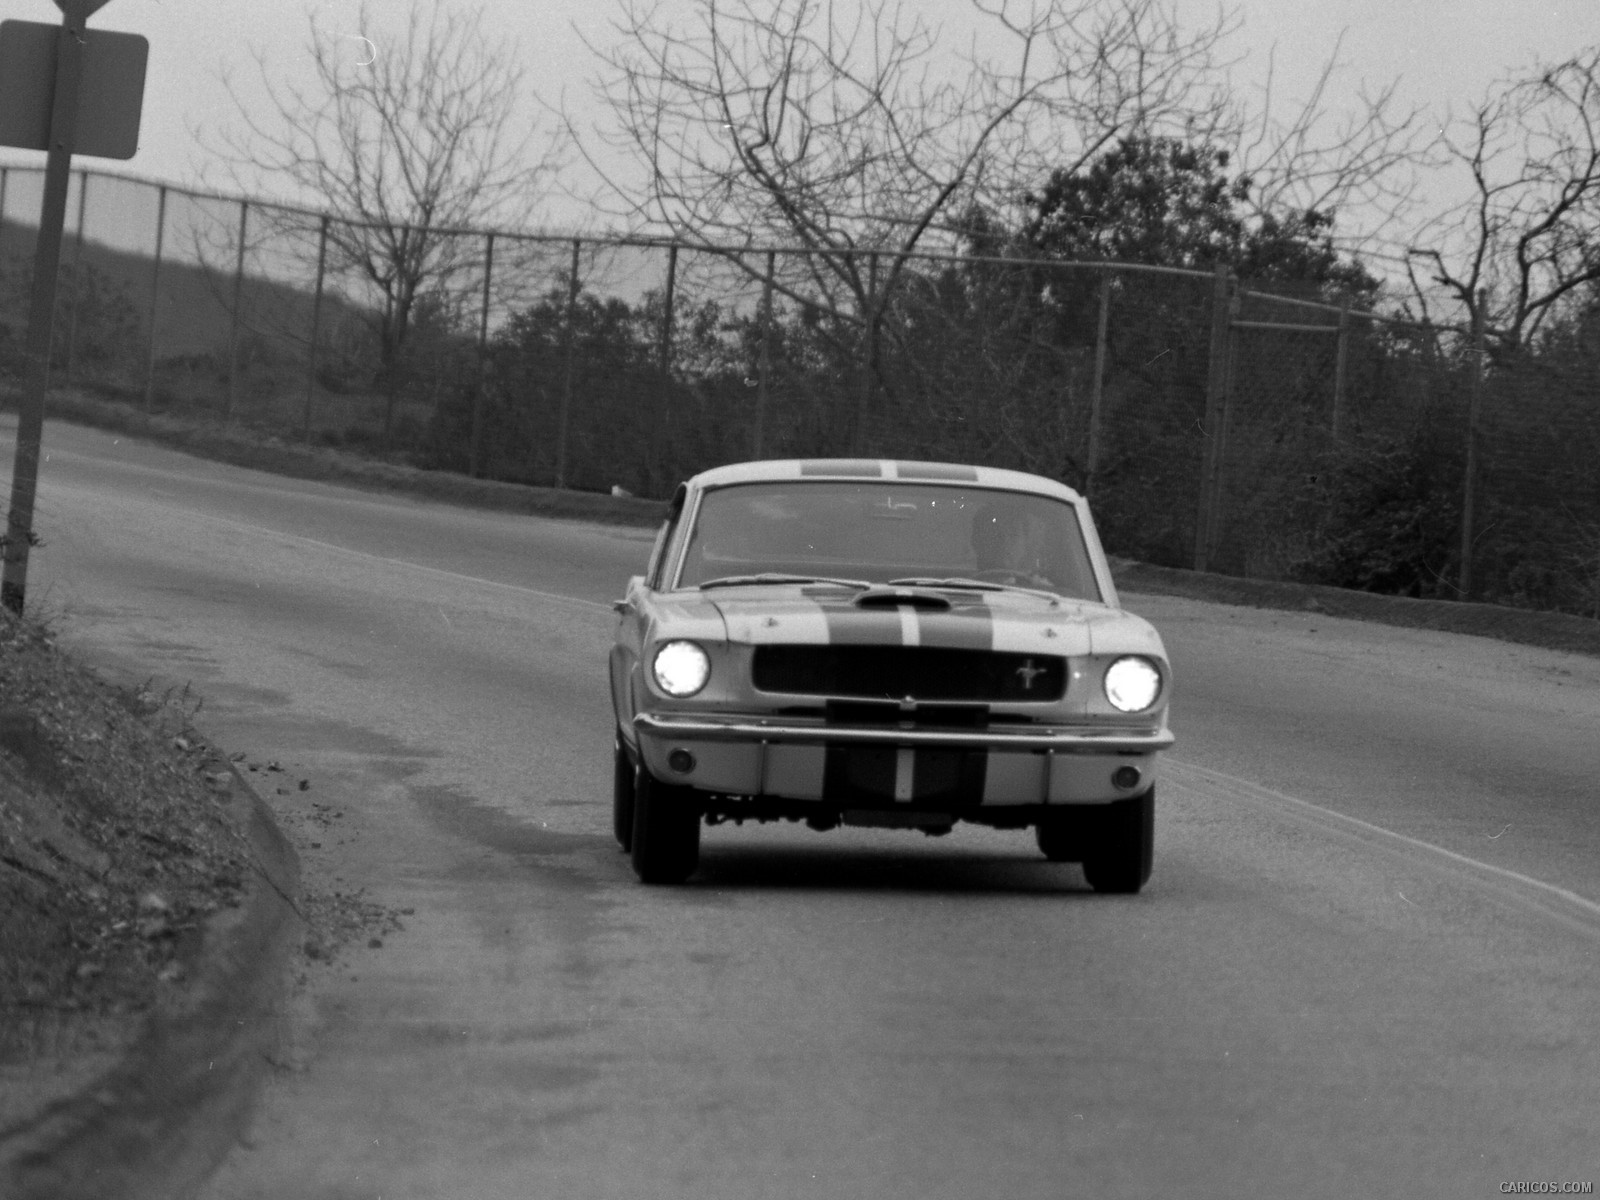 Ford Mustang Shelby GT350 resim